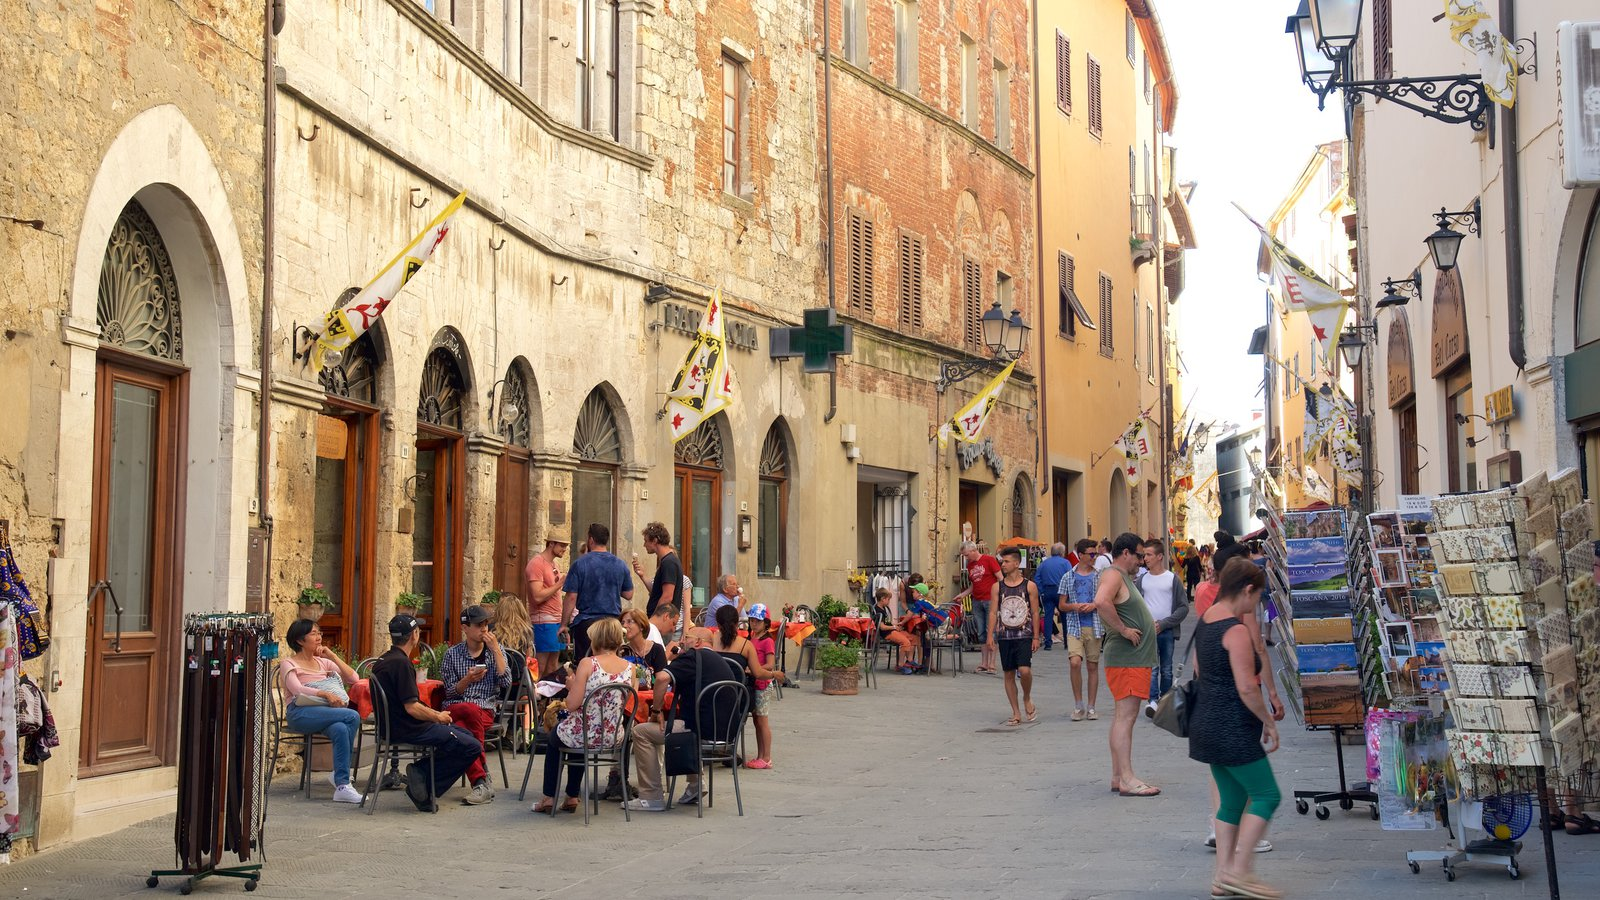 Massa Marittima showing heritage architecture as well as a large group of people